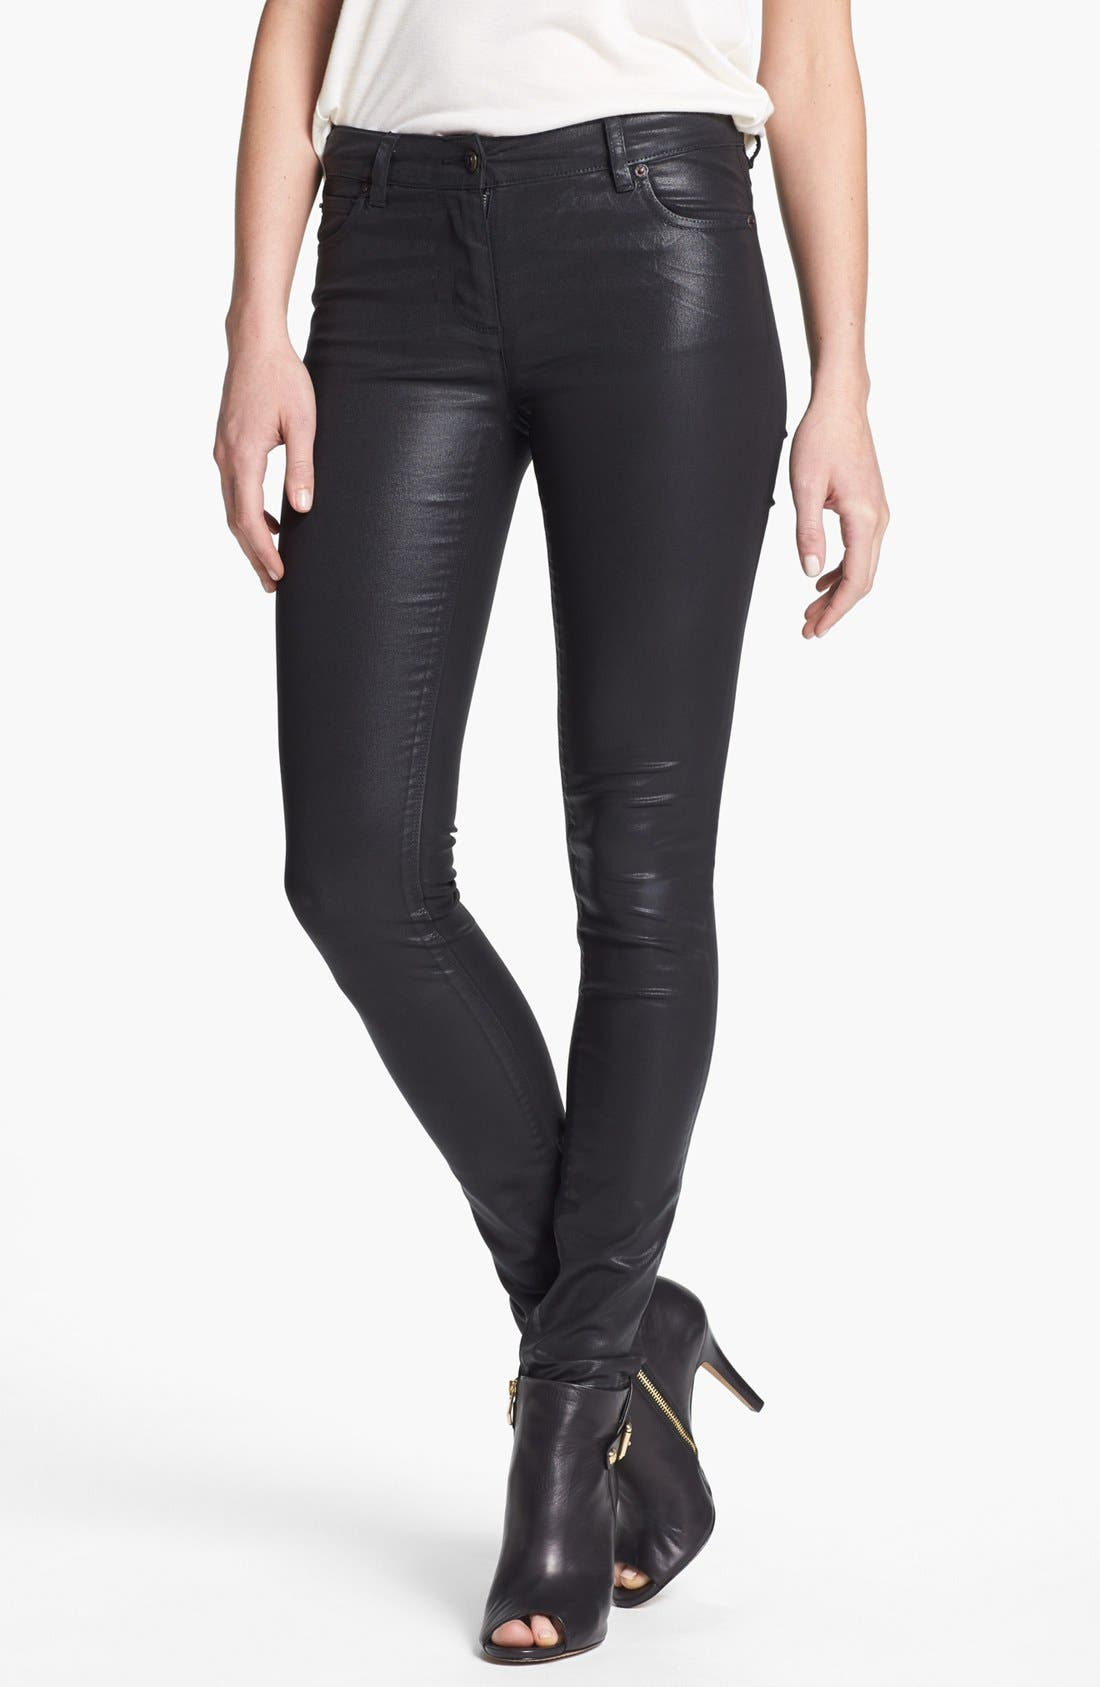 Alternate Image 1 Selected - Two by Vince Camuto Coated Skinny Jeans